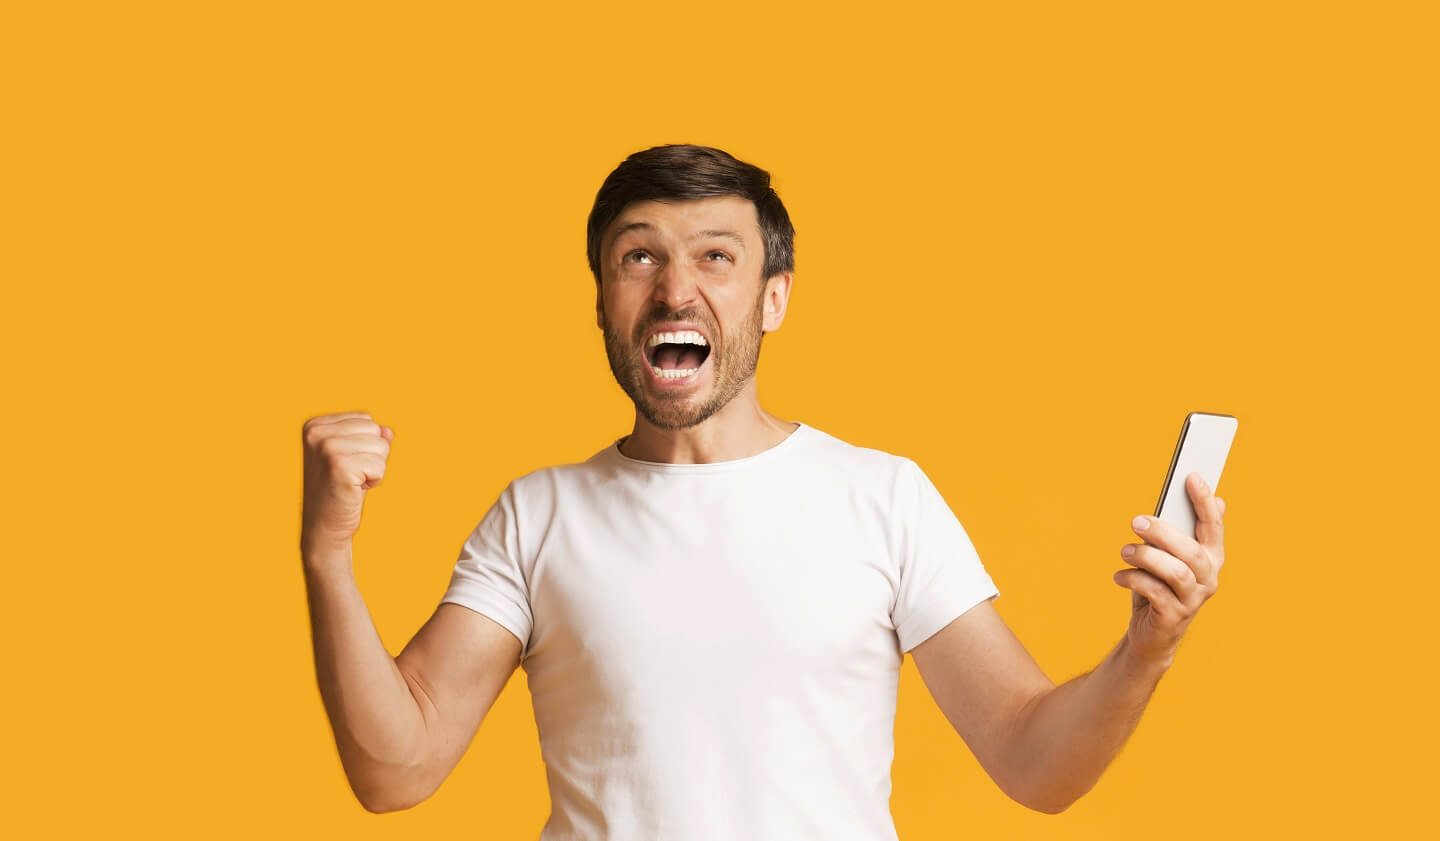 Emotional Man Shouting Holding Smartphone And Shaking Fists Standing On Yellow Studio Background.